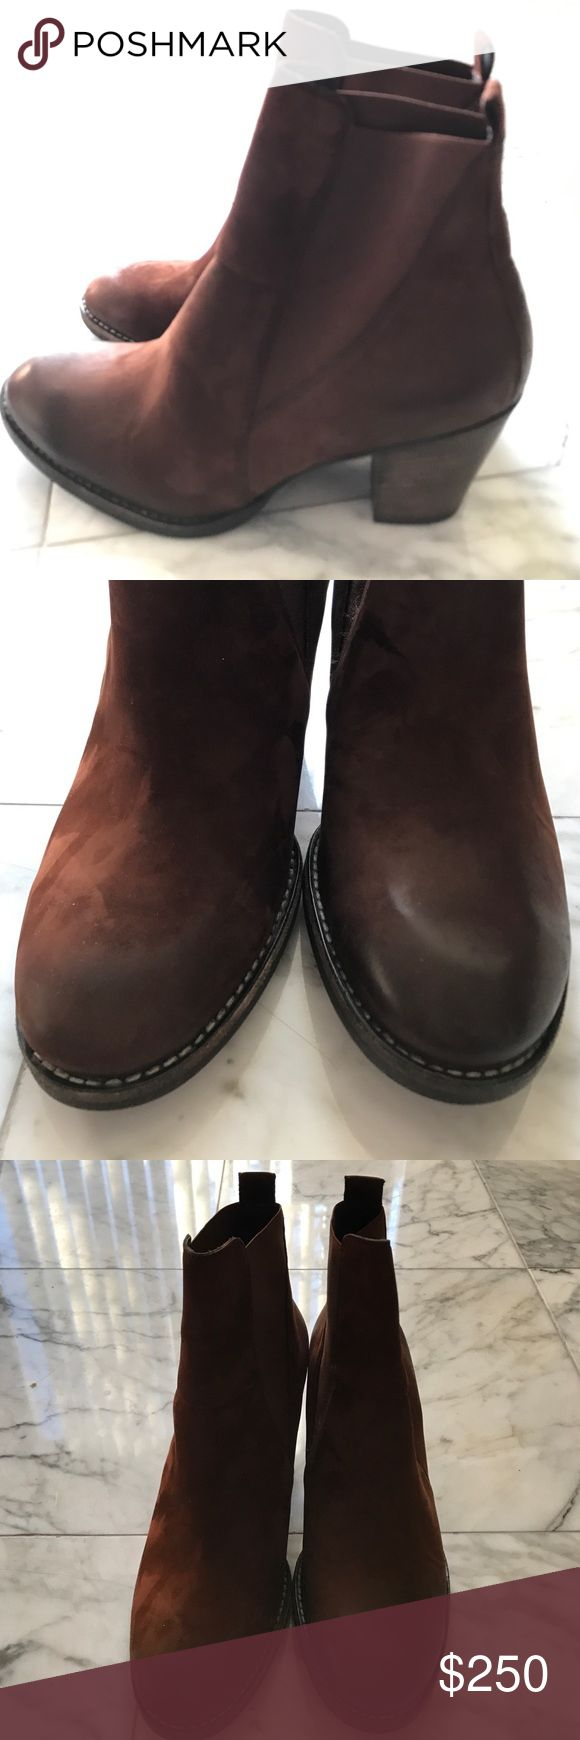 Brand new Paul Green Booties Sz 7 Super gorgeous Paul Green with buttery leather. Original price $400. Made in Austria. Brand New. size 7. paul green Shoes Ankle Boots & Booties